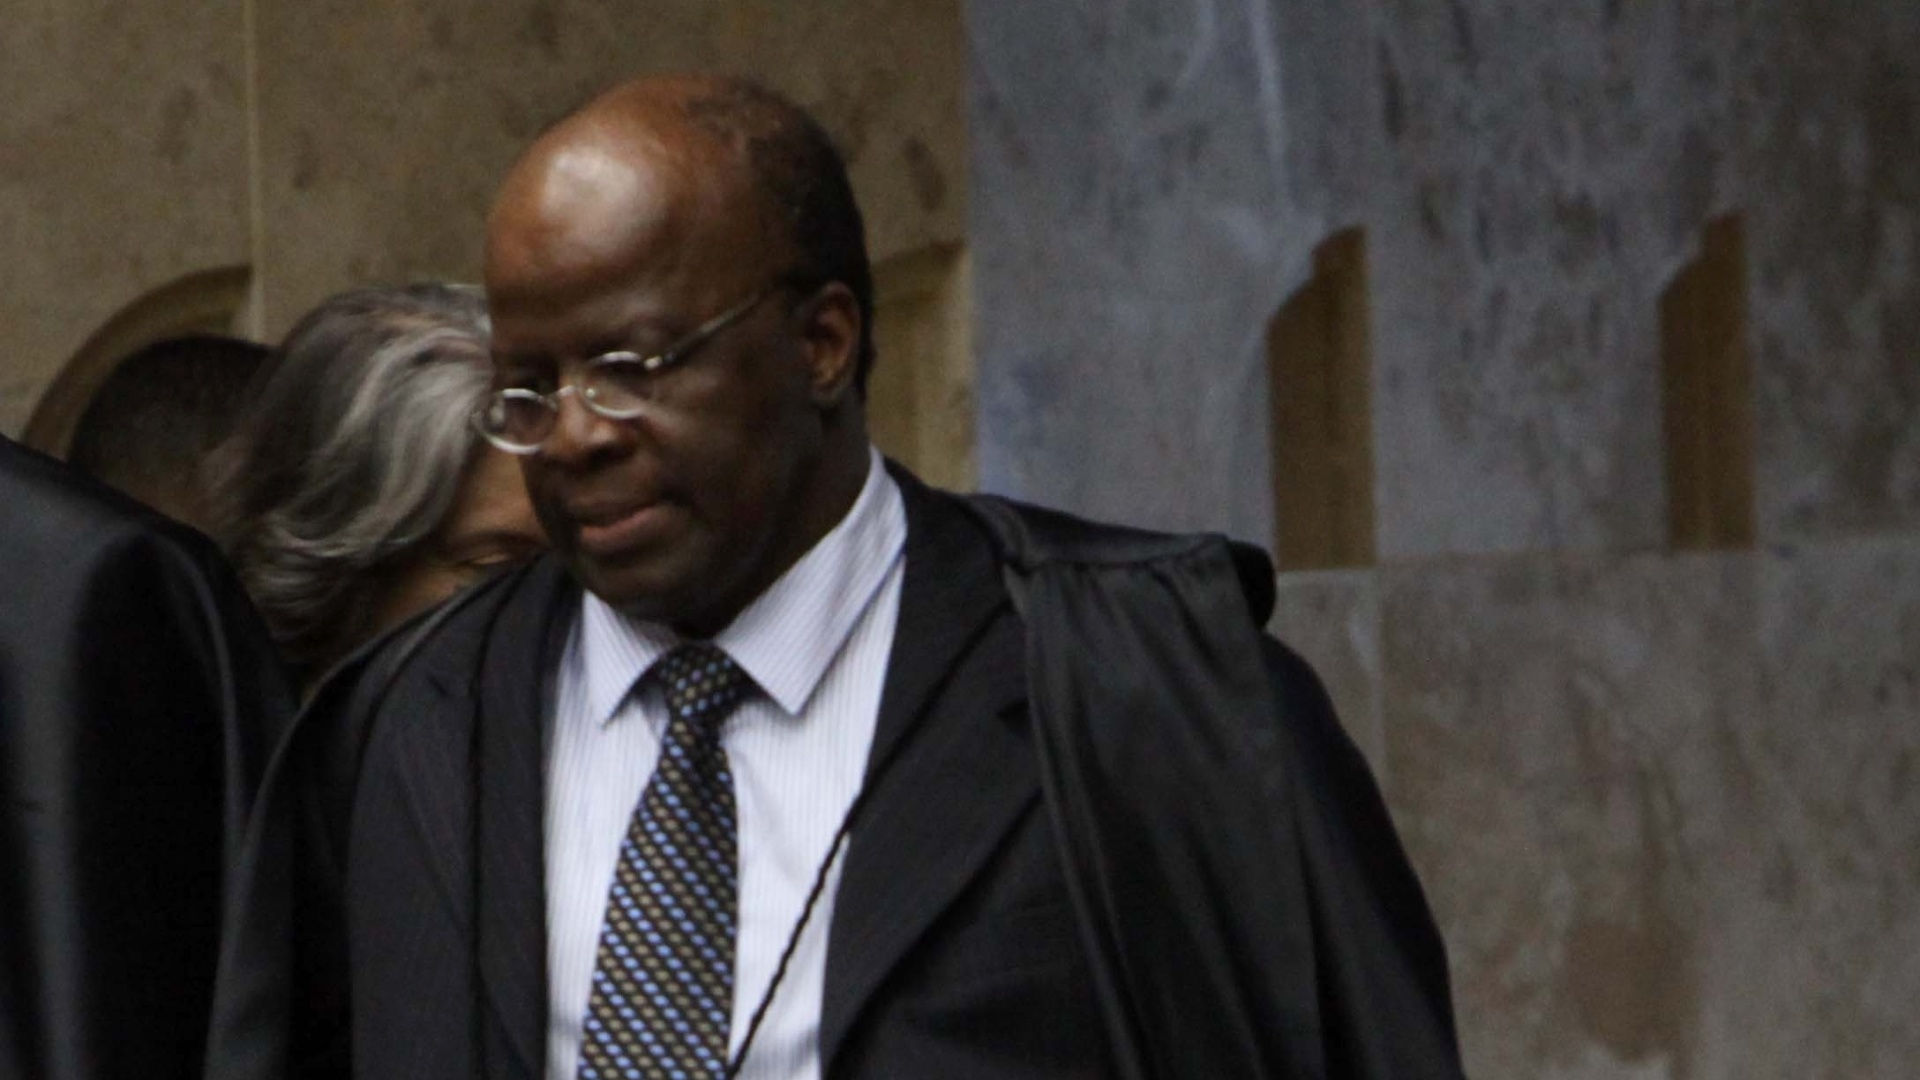 8.nov.2012 - O ministro Joaquim Barbosa na segunda entrada no plenrio para sesso do julgamento do mensalo, em Braslia